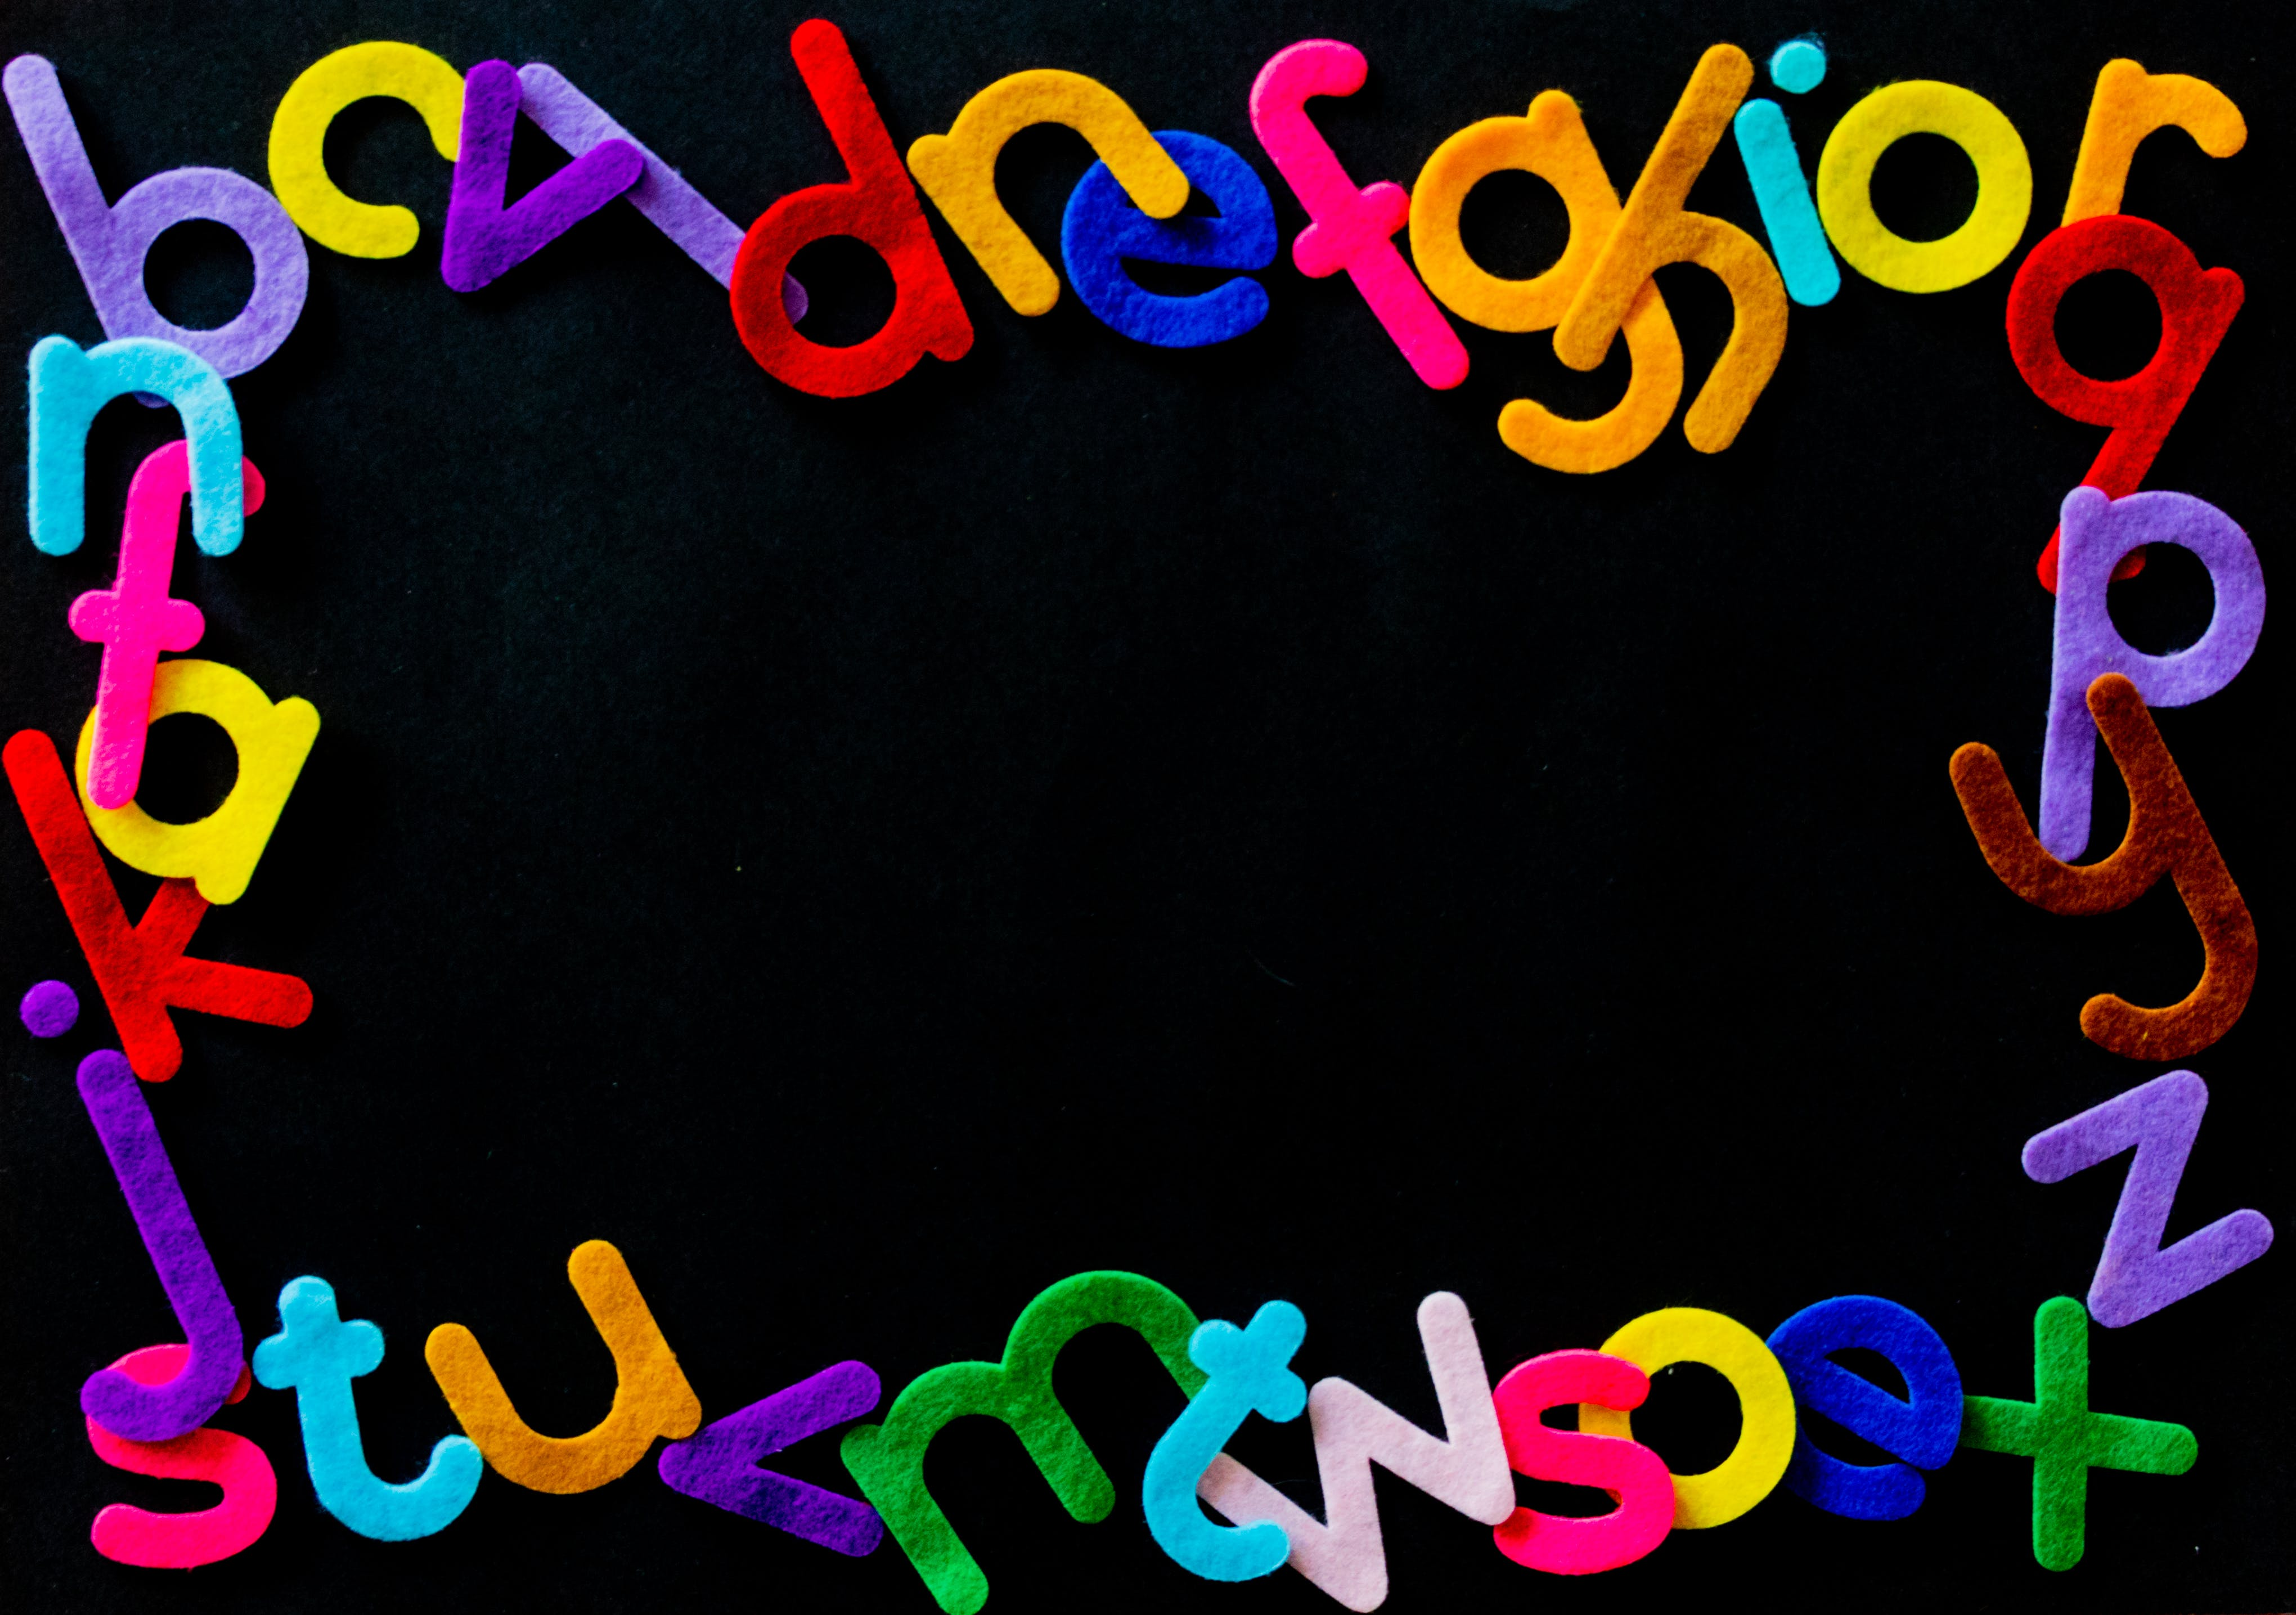 Black Background With Alphabet Letters Text Overlay